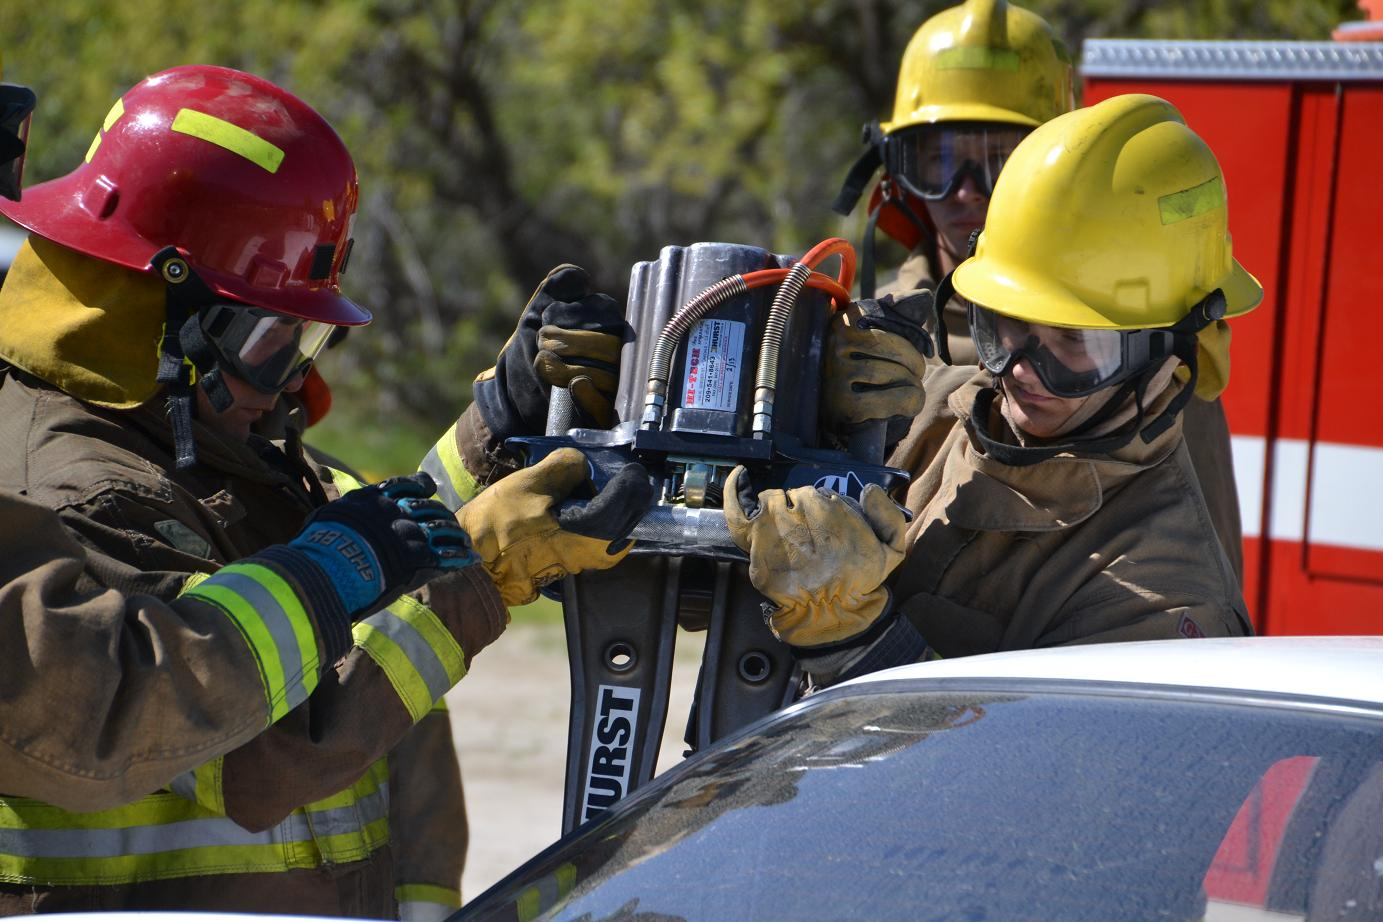 Learning to use the Jaws of Life - photo by Gina Clugston